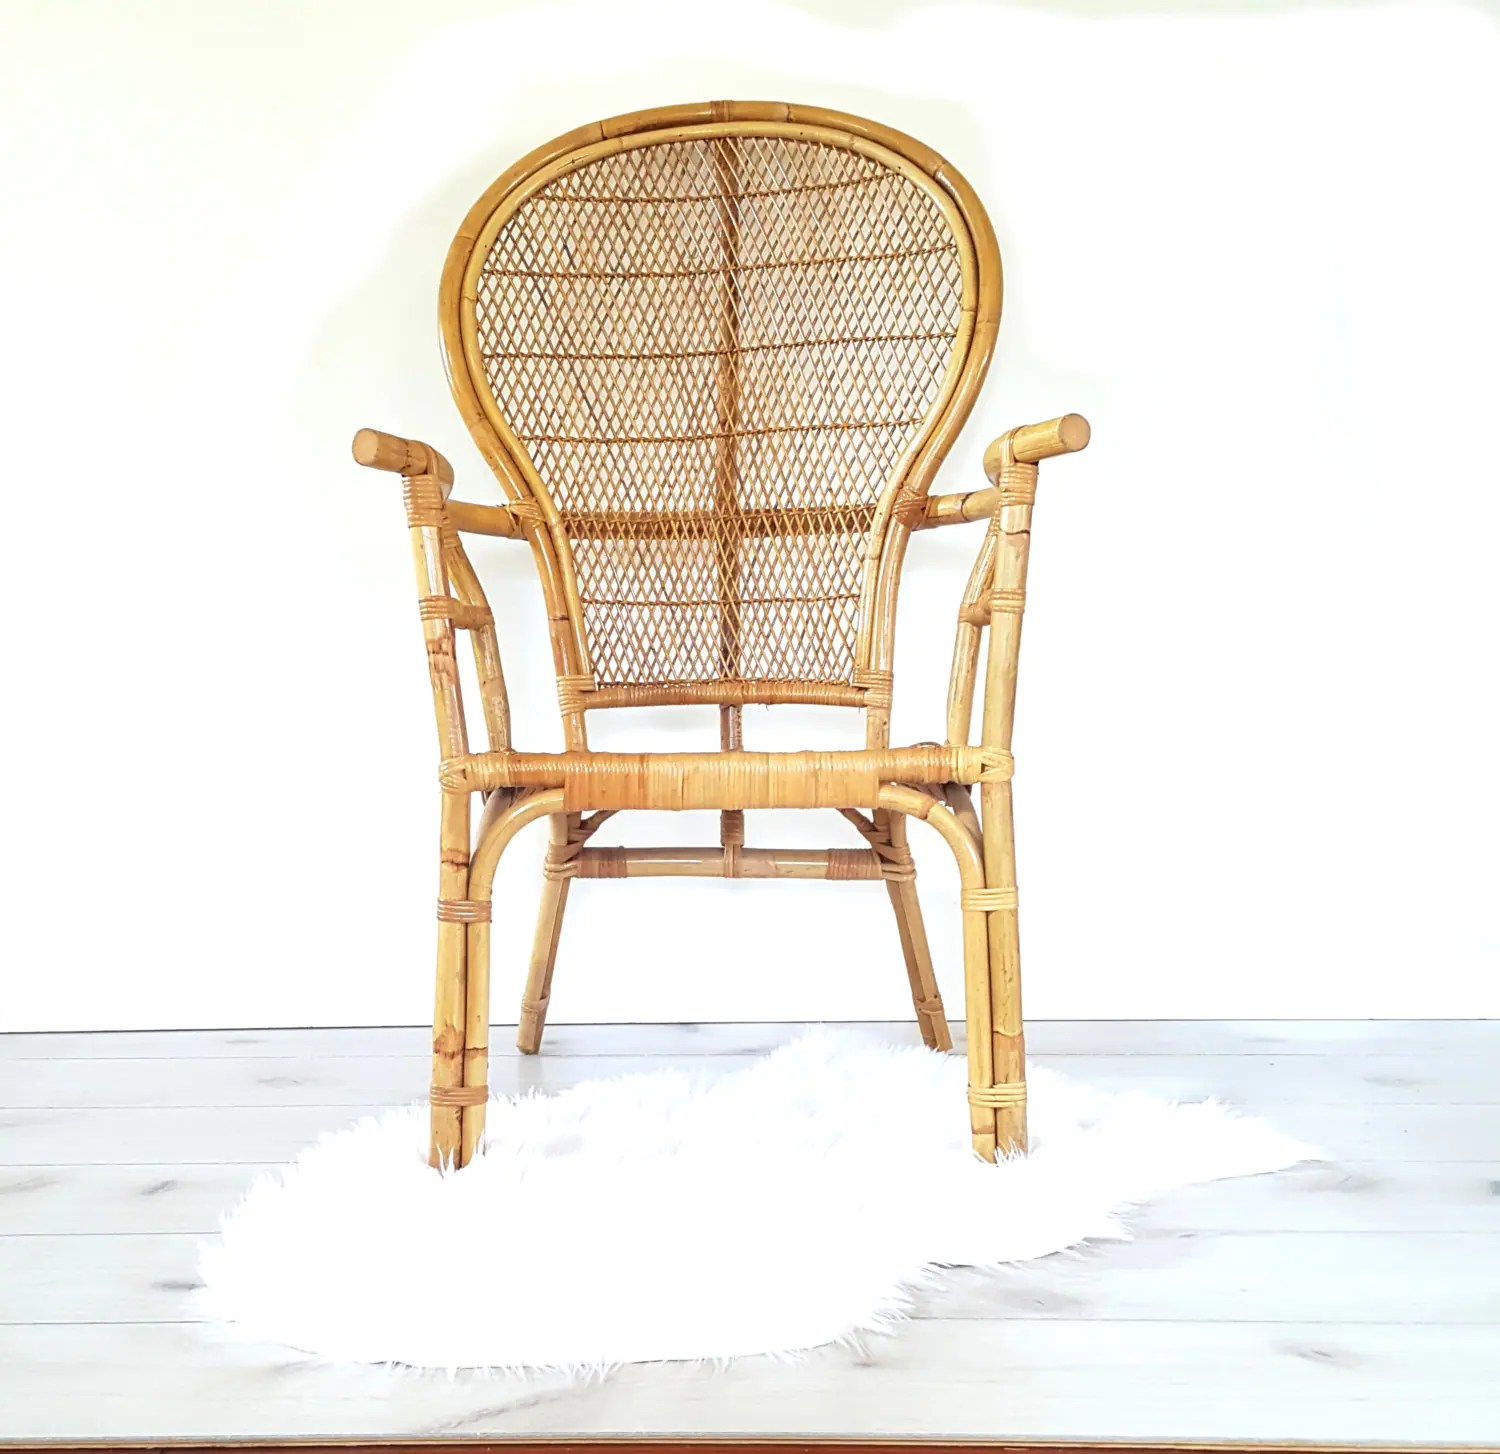 Vintage Rattan Chairs Bamboo Arm Chair Vintage Bentwood Bamboo Rattan High Back